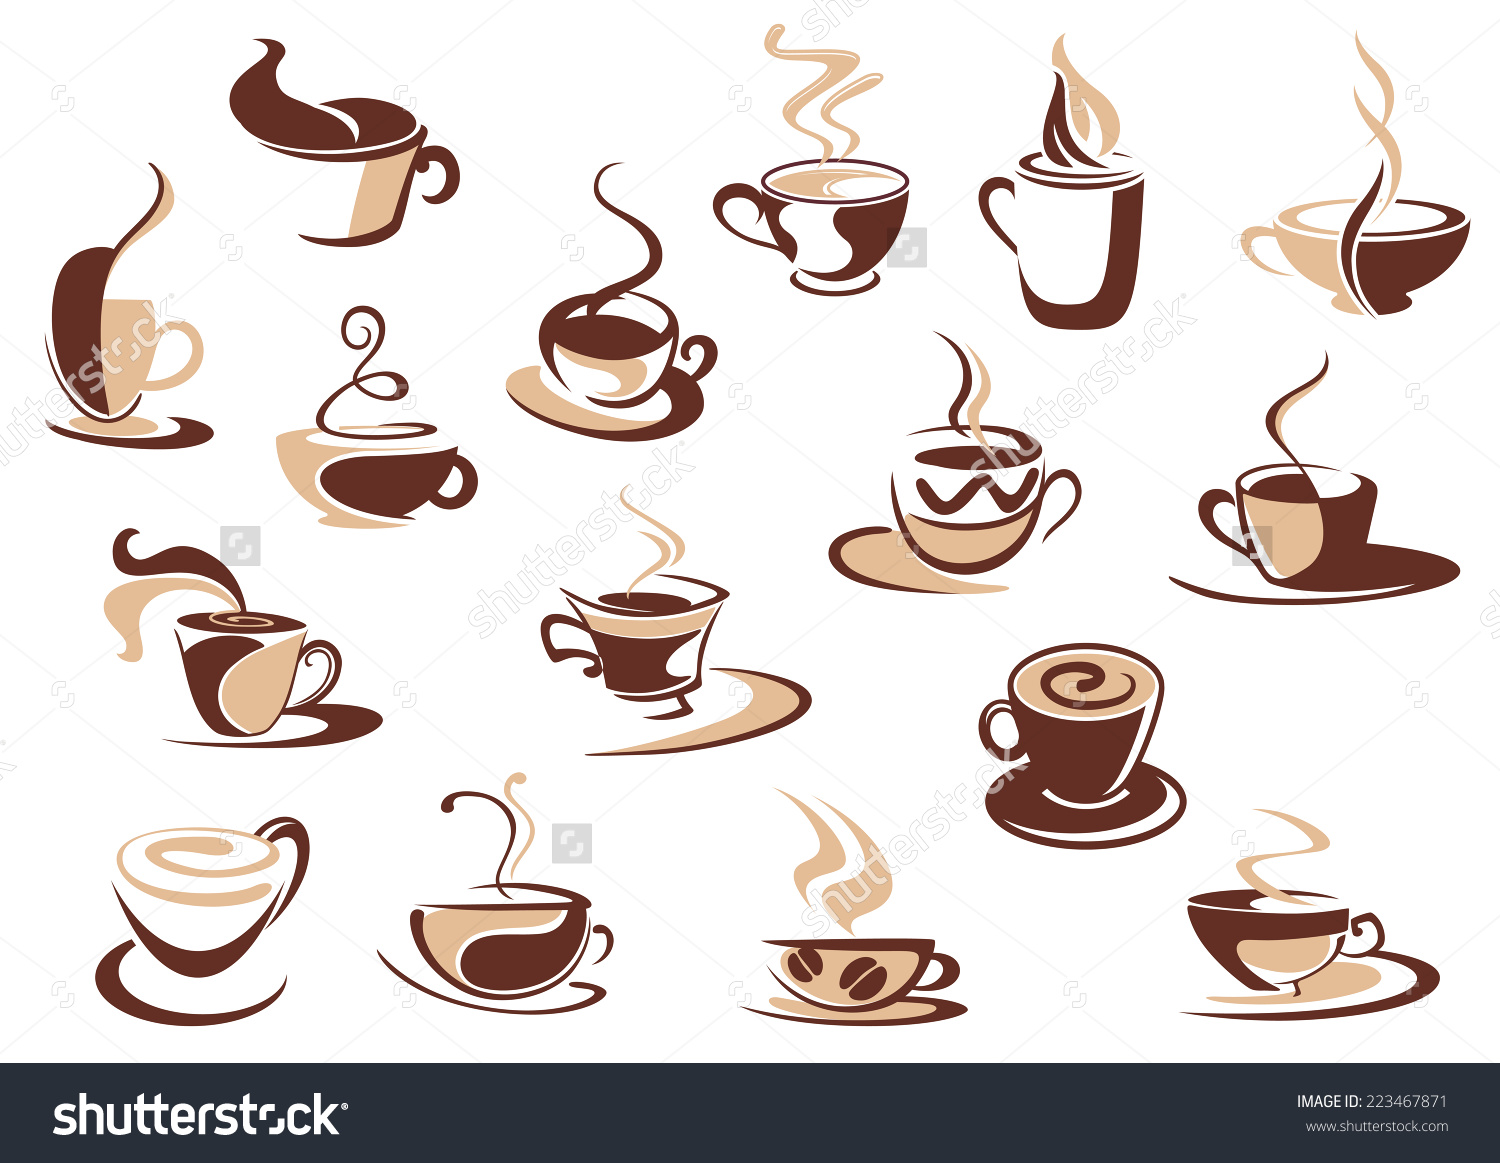 Coffee Cup Icons Shades Brown Doodle Stock Vector 223467871.